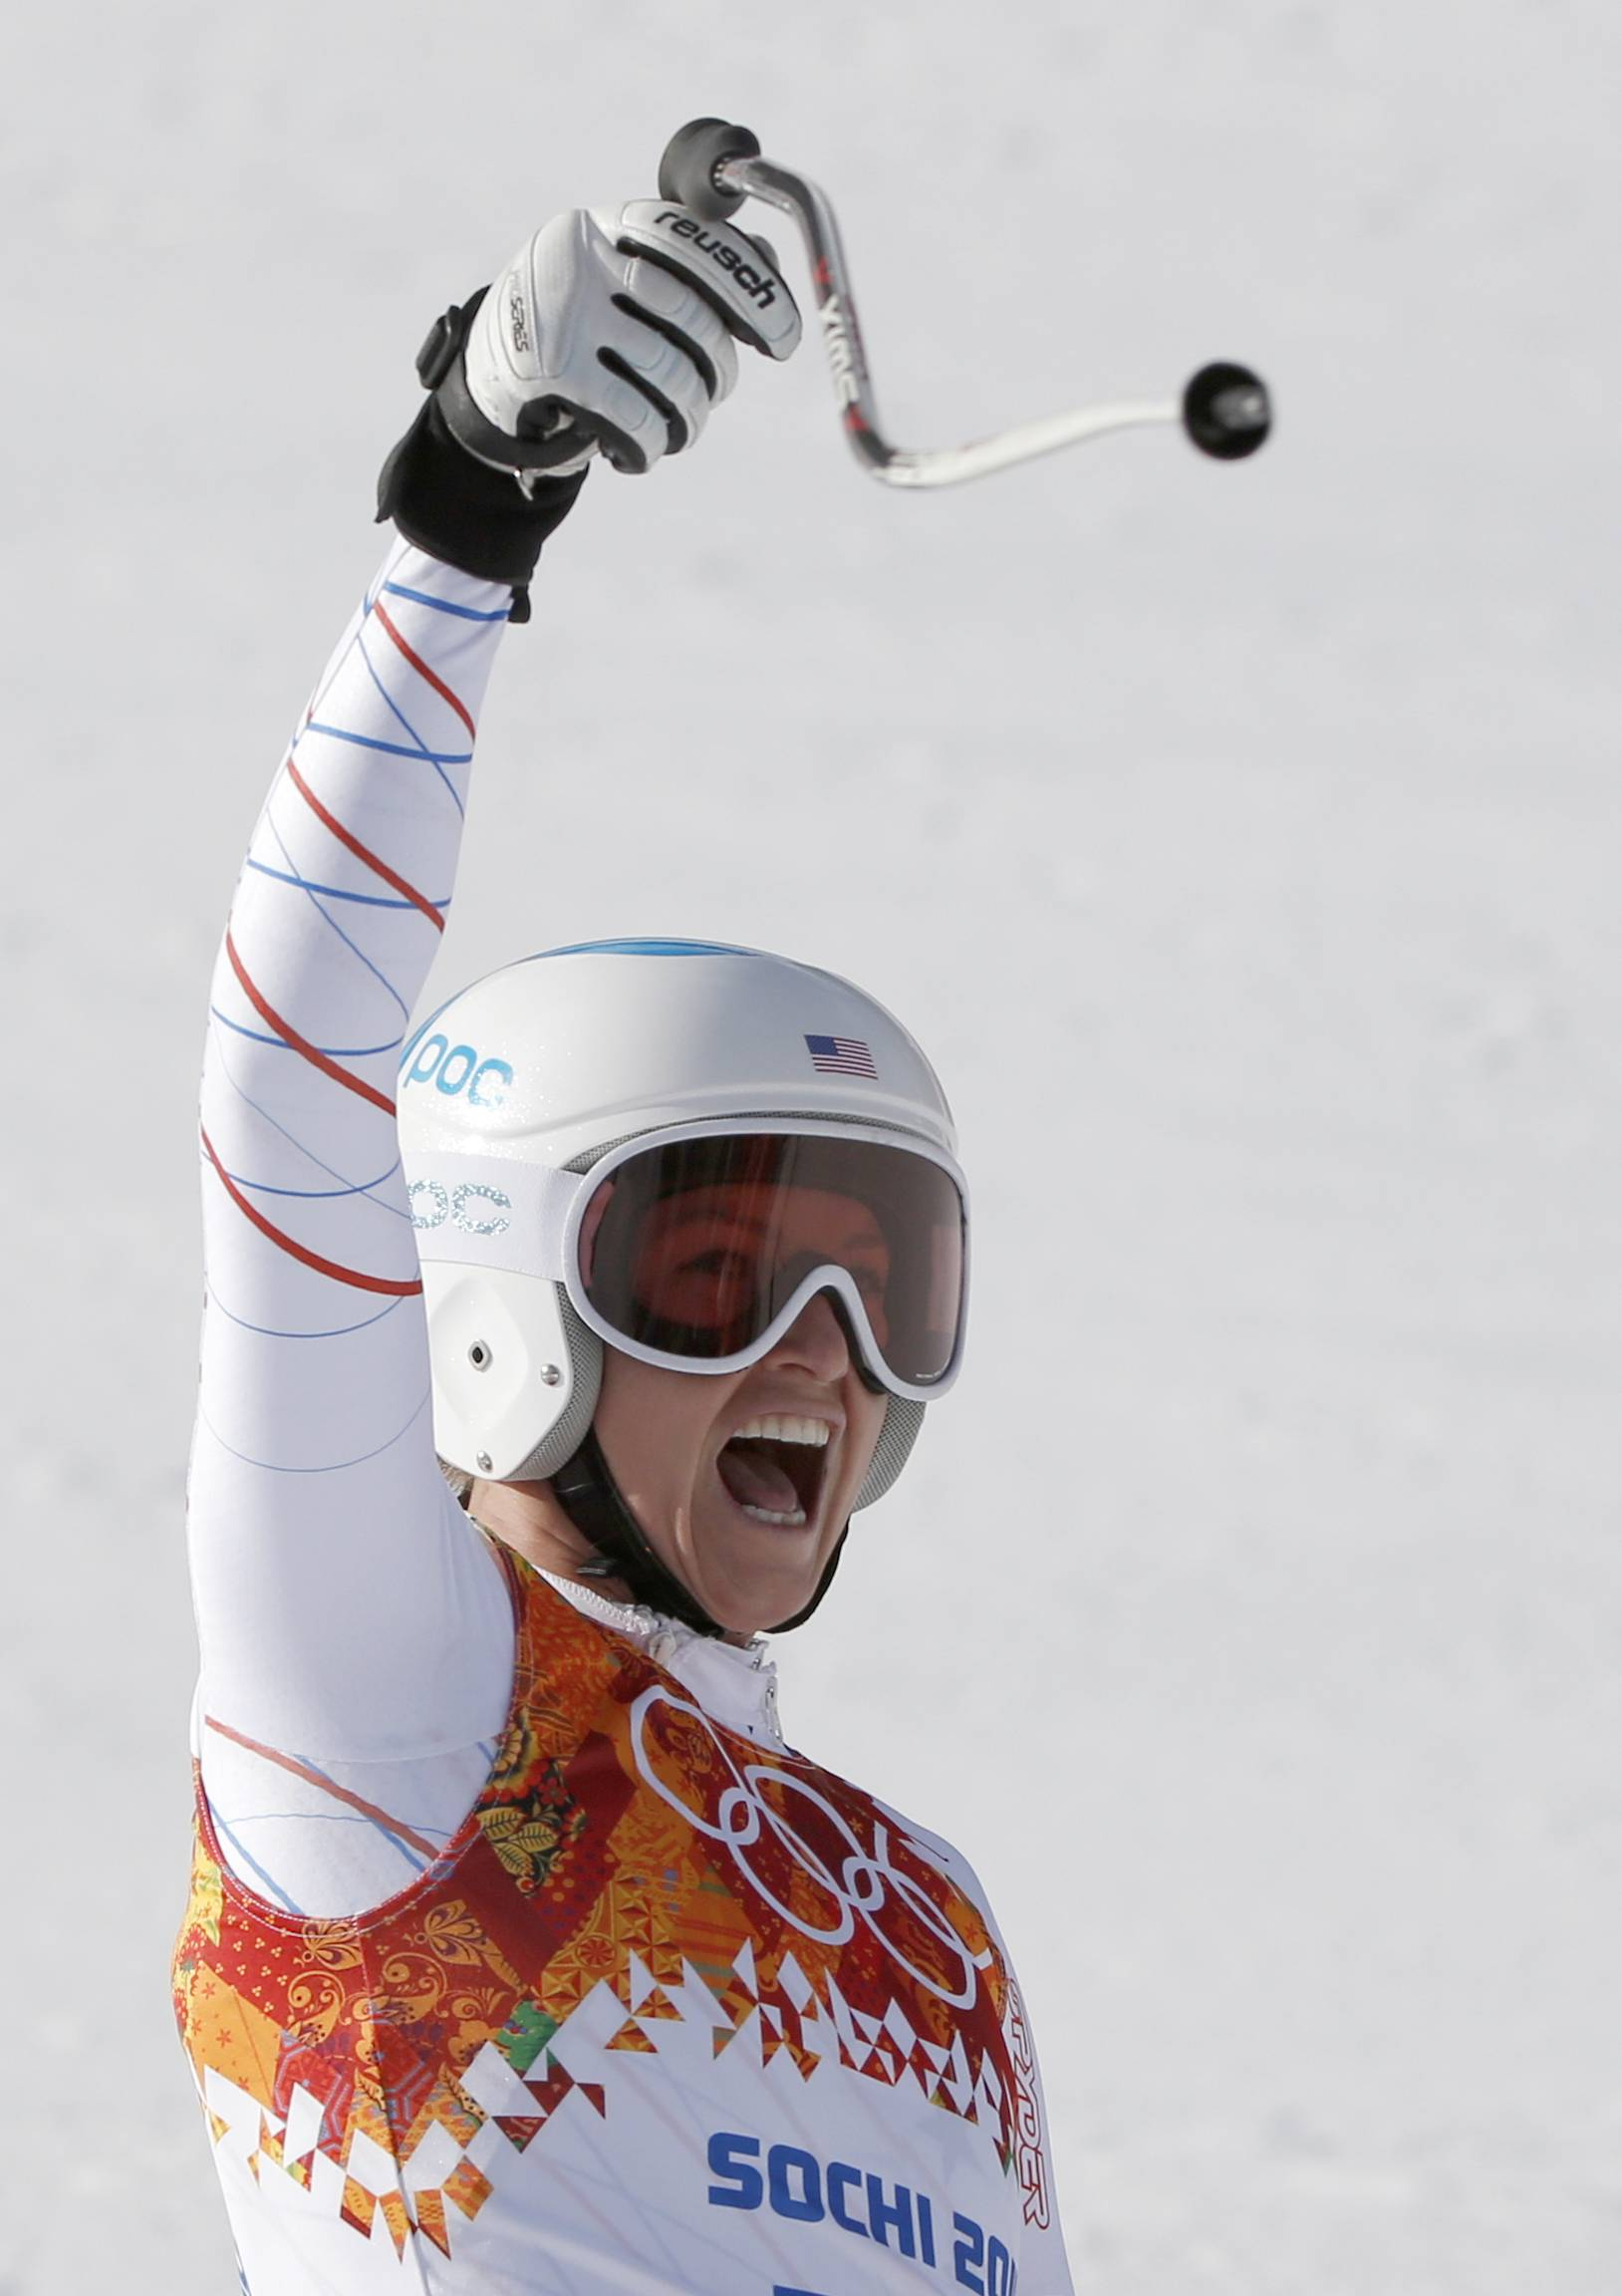 United States' Julia Mancuso celebrates after finishing the downhill portion of the women's supercombined.